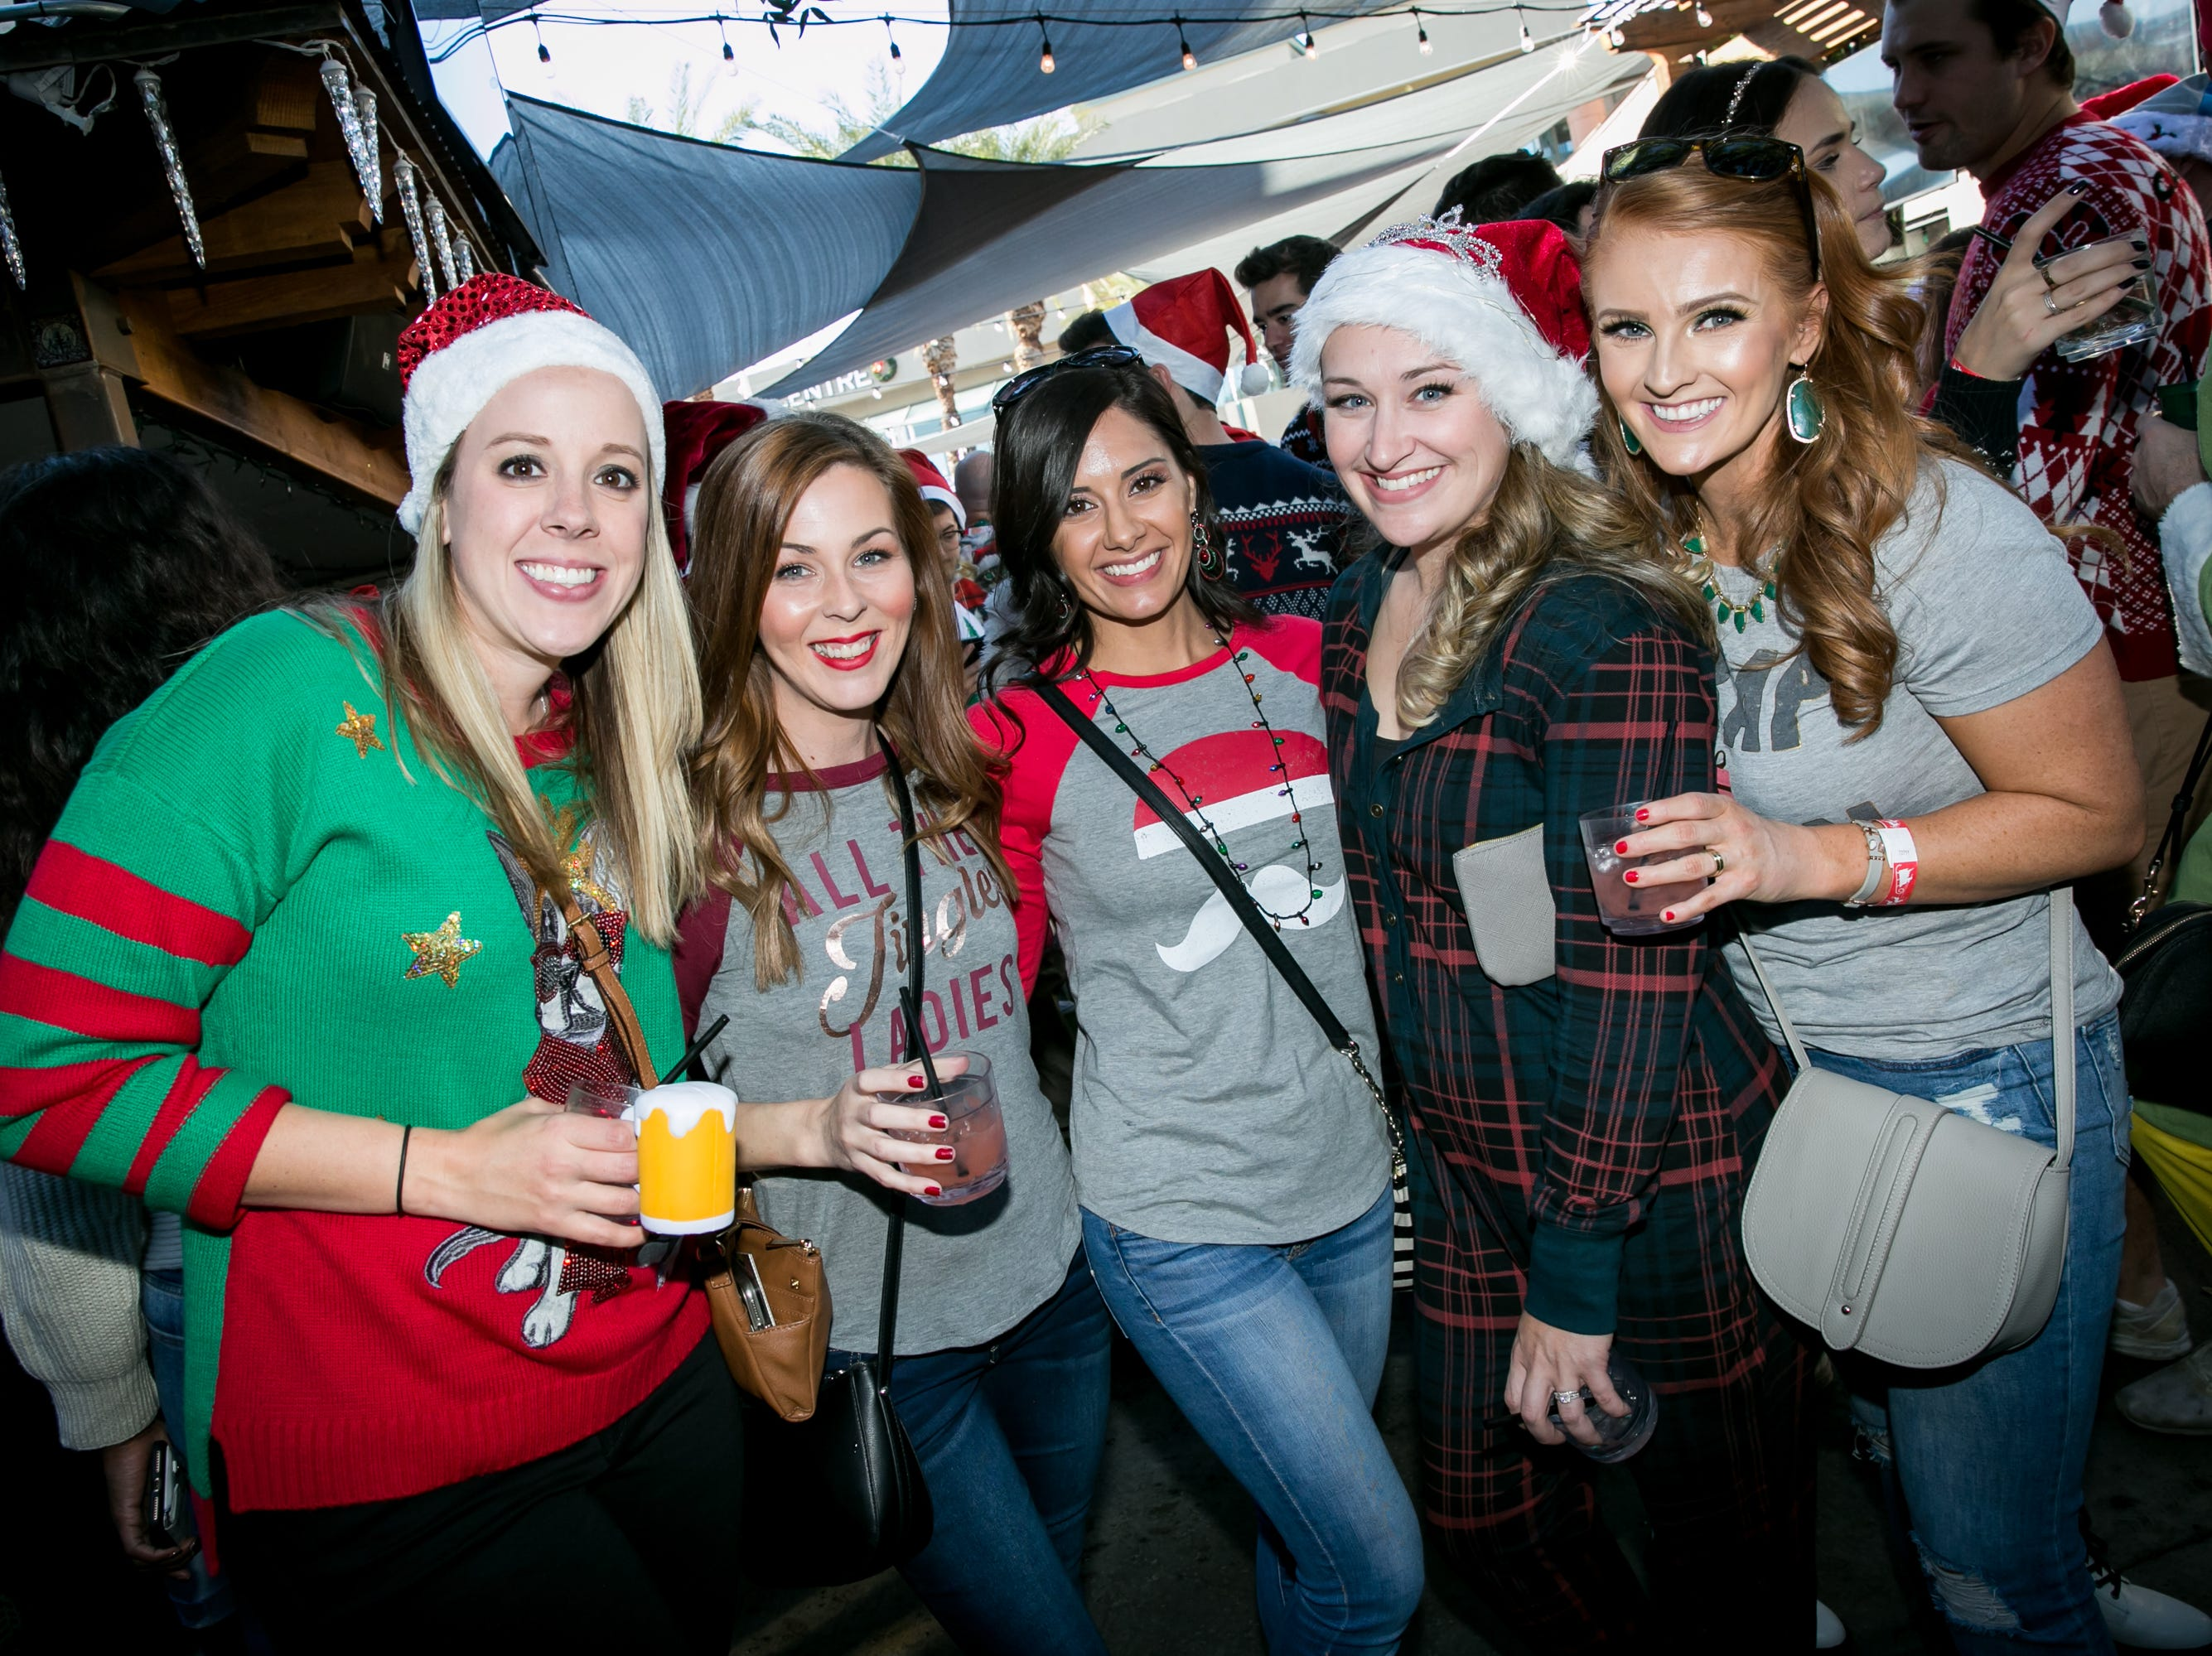 Great times were had during the Scottsdale Santa Crawl at Old Town Gringos on Saturday, December 8, 2018.